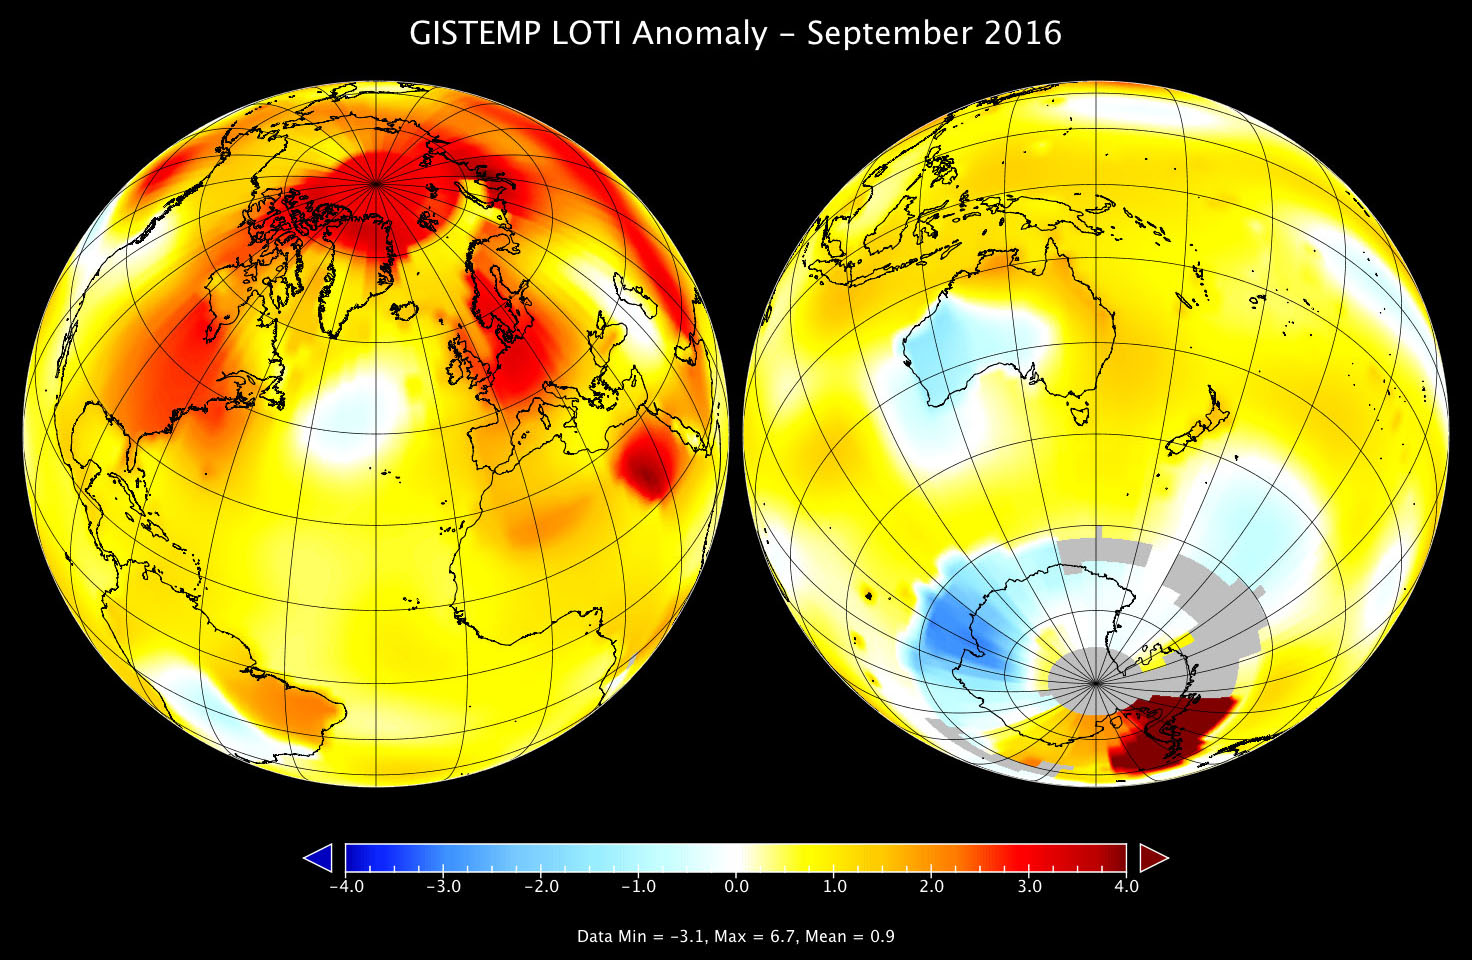 Global map of GISTEMP anomaly